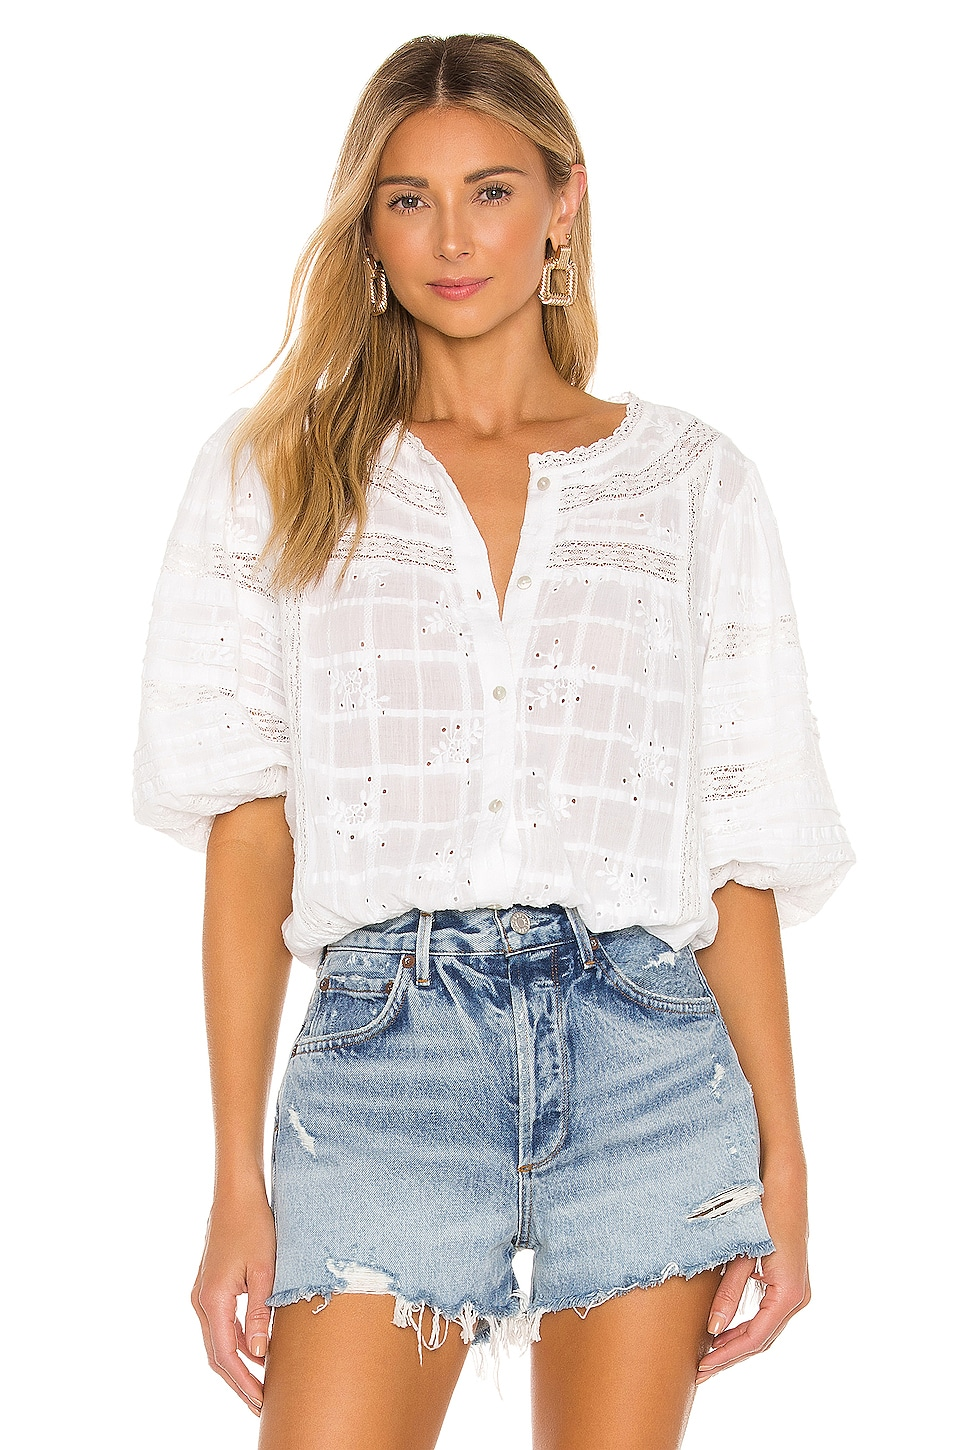 Country Lane Heirloom Blouse             Sanctuary                                                                                                       CA$ 167.11 9